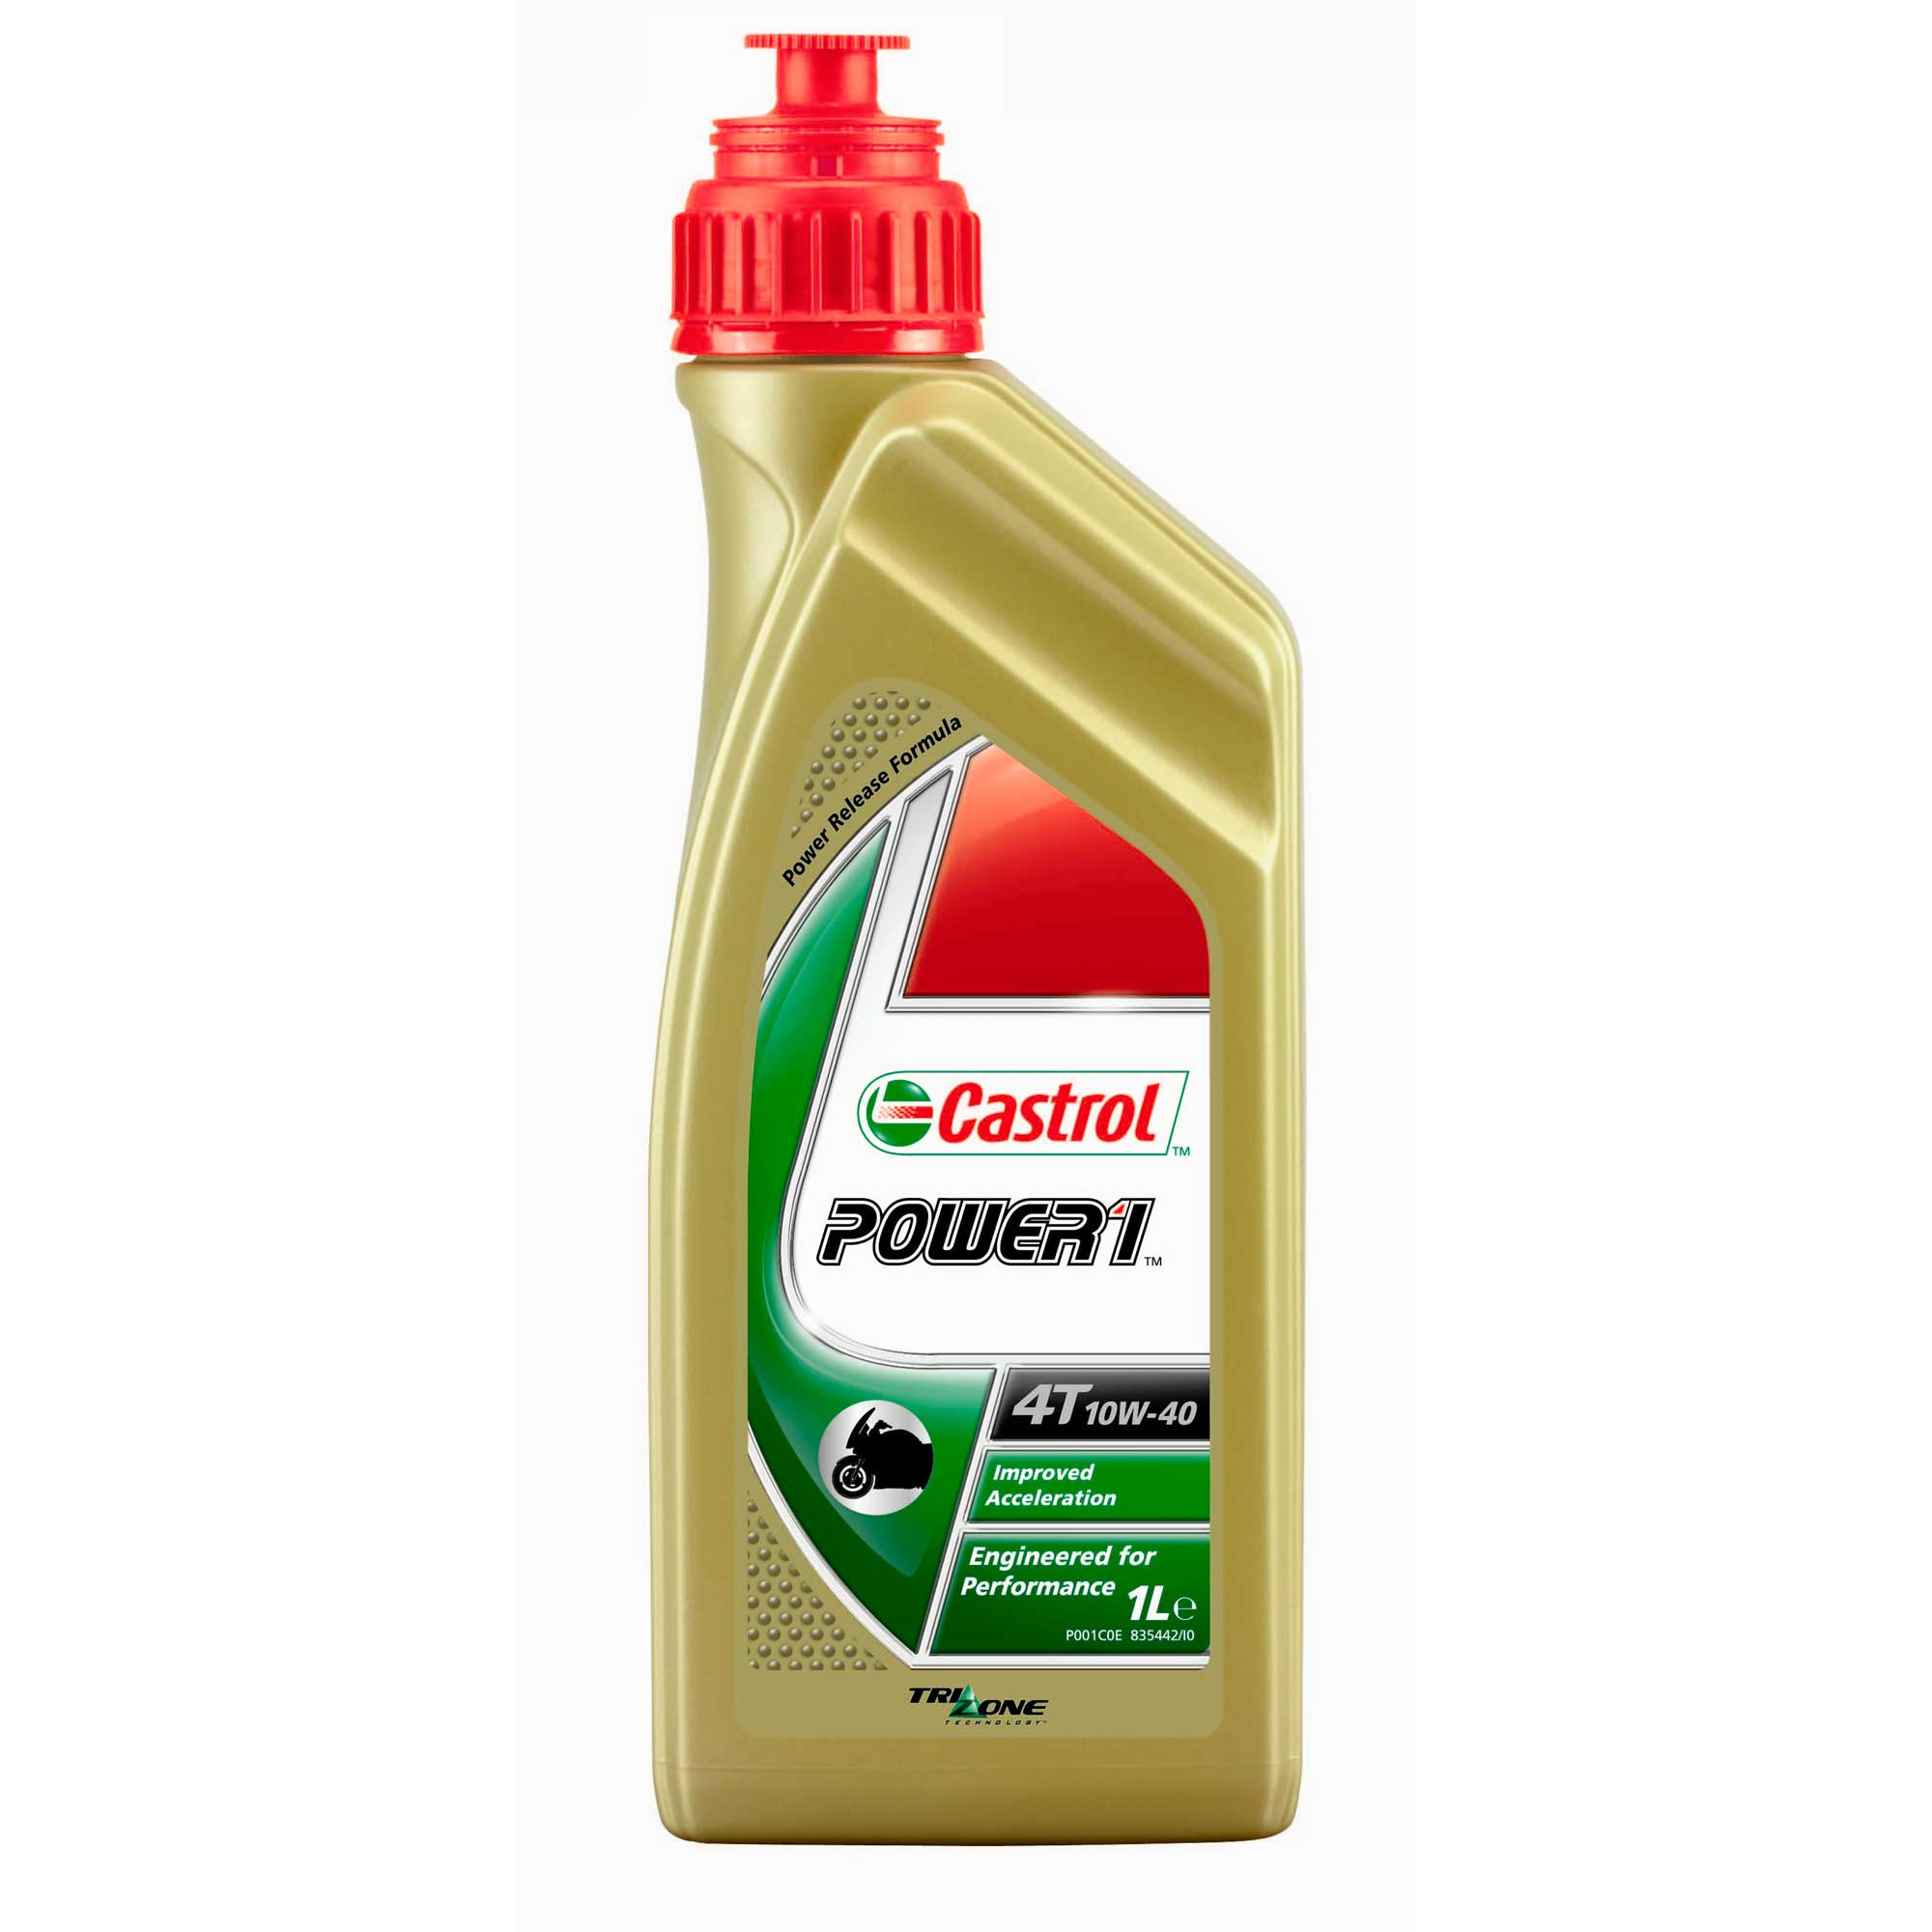 Castrol 20W-50 4T Motorcycle Oil - 1 Quart Bottle, (Pack ...